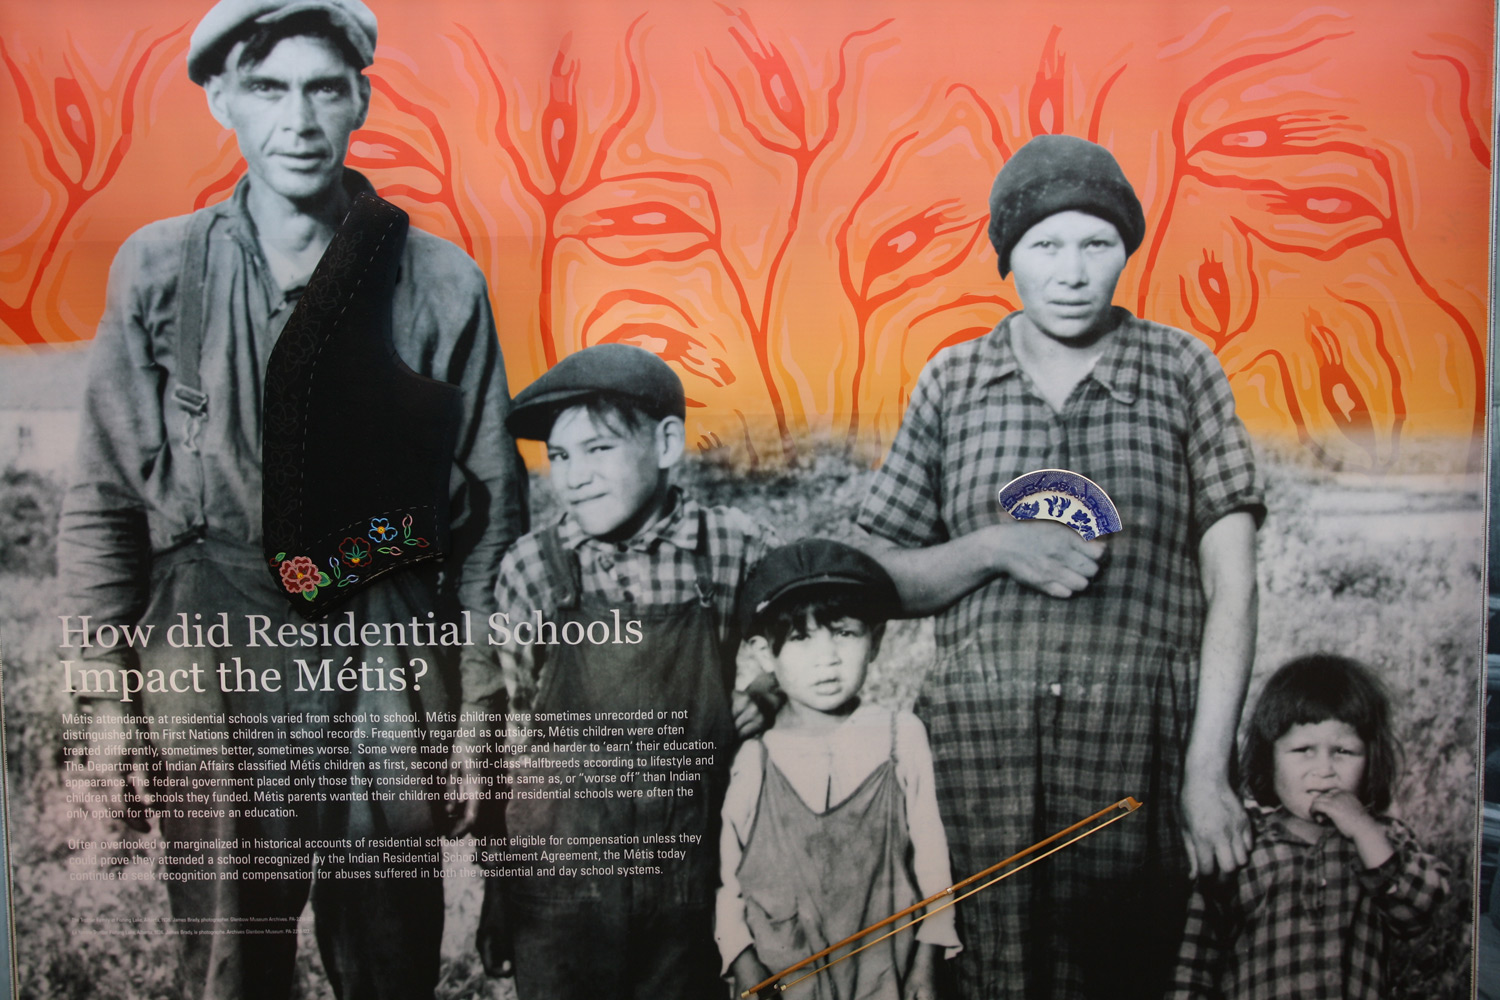 Forgotten: The Metis Residential School Experience - United Way Winnipeg